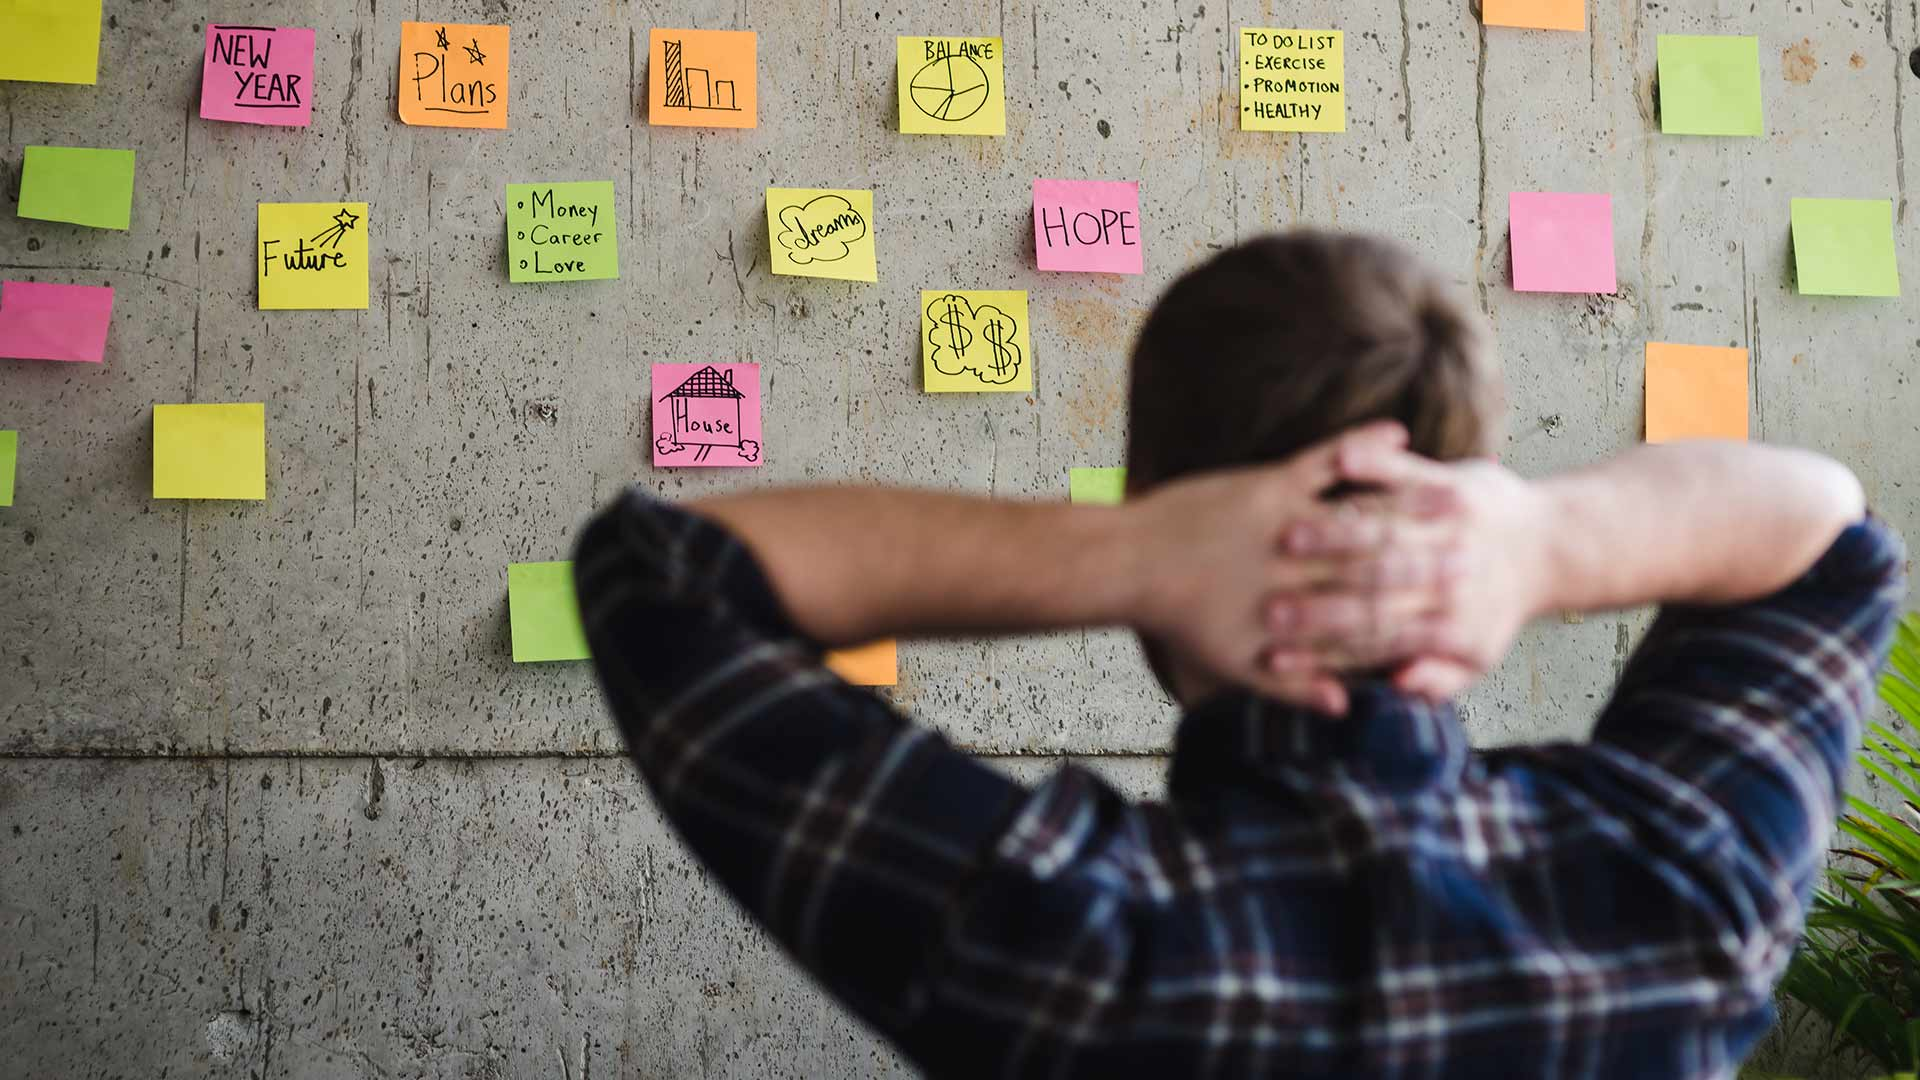 Man looking at a wall covered in post-it notes.